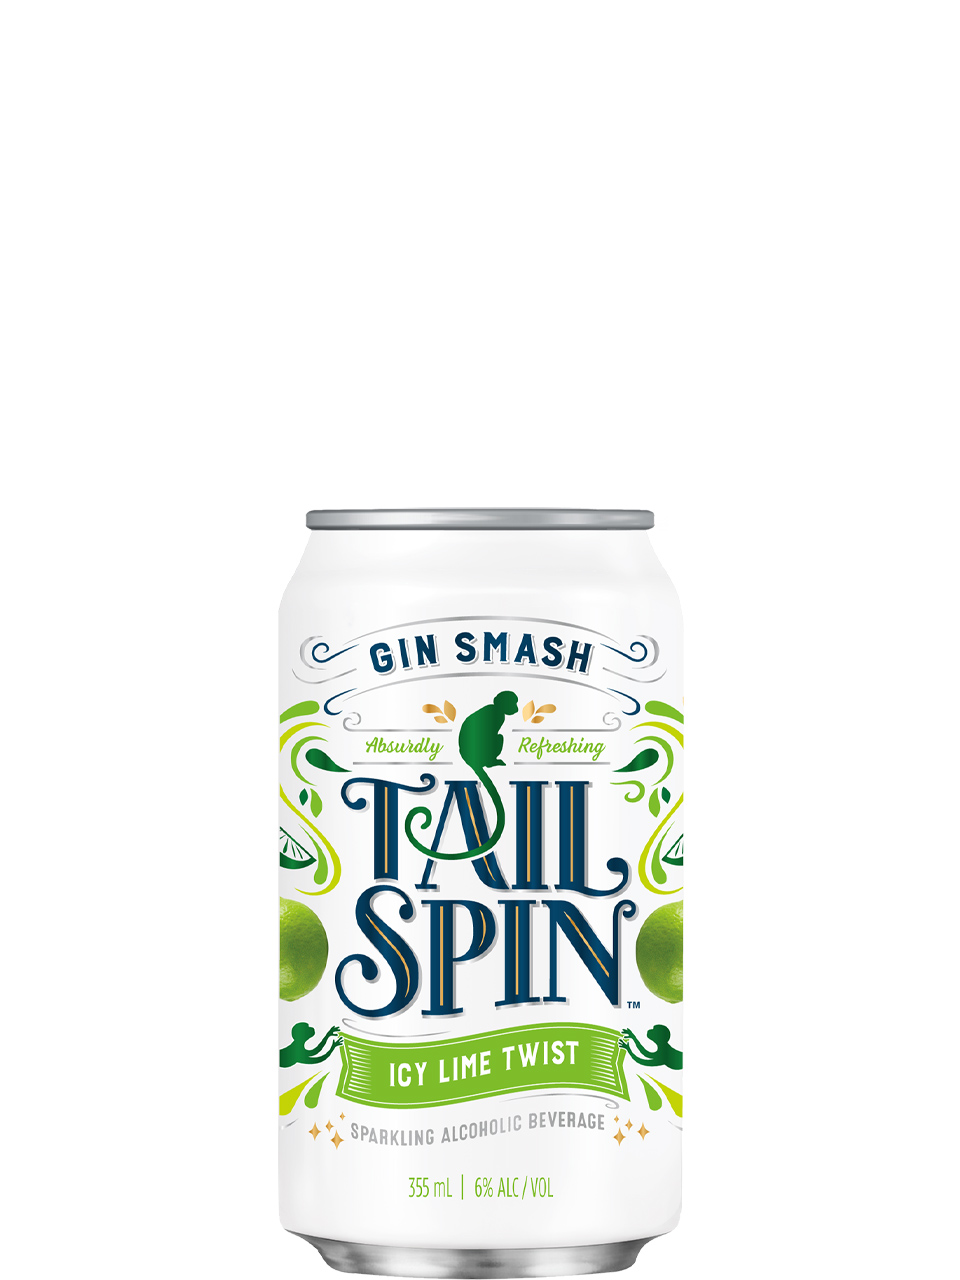 Tail Spin Gin Smash Icy Lime Twist 6 Pack Cans